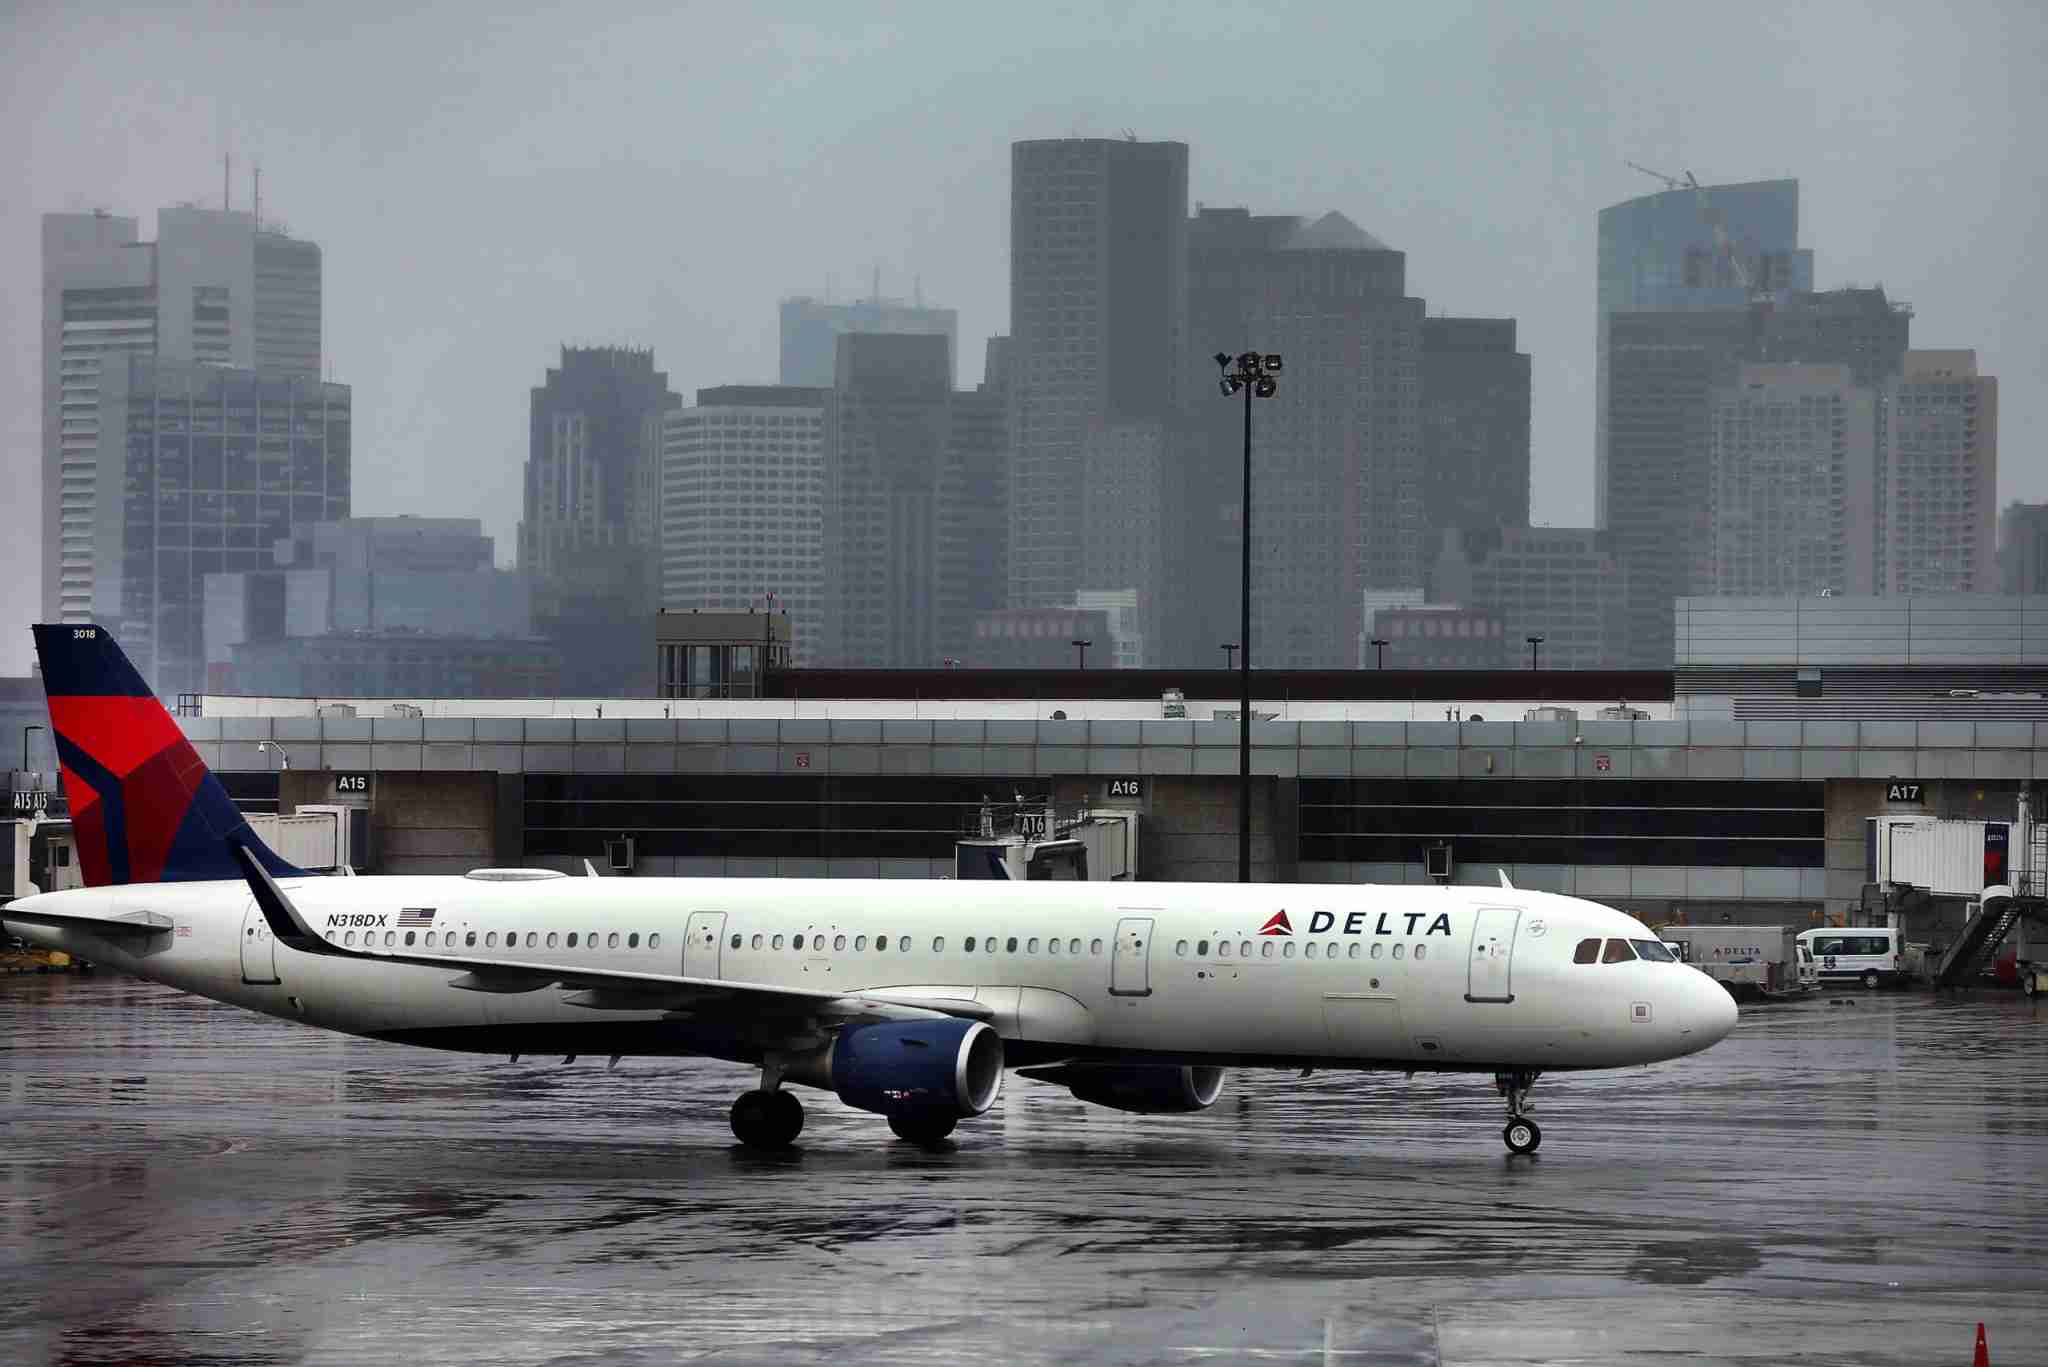 BOSTON, MA - APRIL 24: A Delta jet taxis to the gate at Boston Logan International Airport in Boston on April 24, 2020. (Photo by John Tlumacki/The Boston Globe via Getty Images)